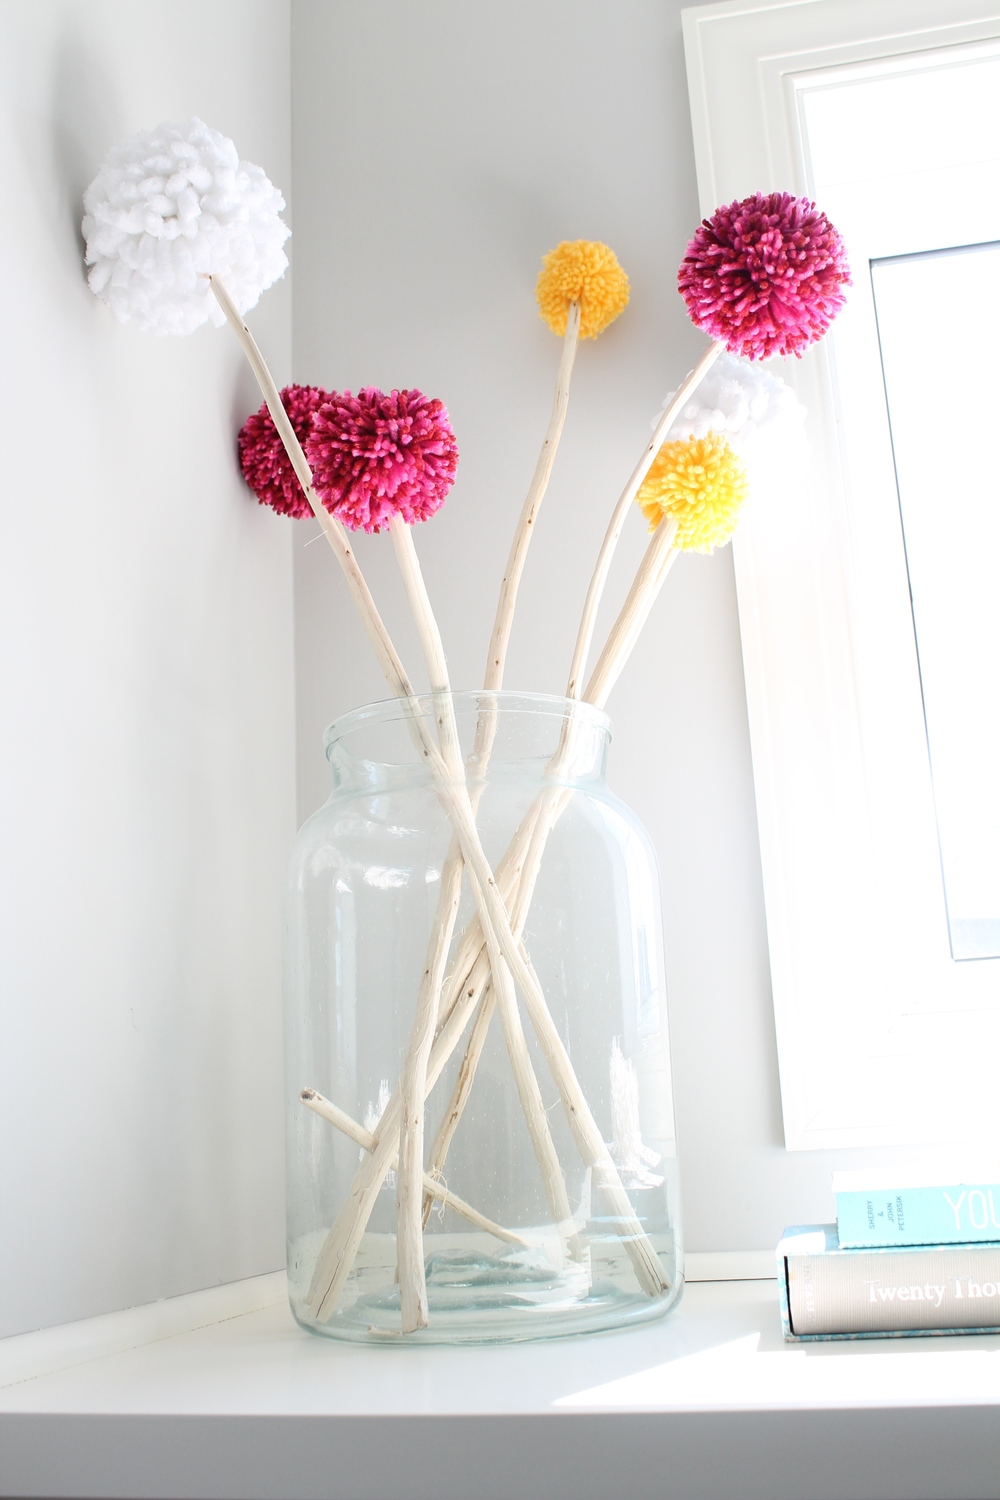 DIY Pickle Jar with Pom Poms.